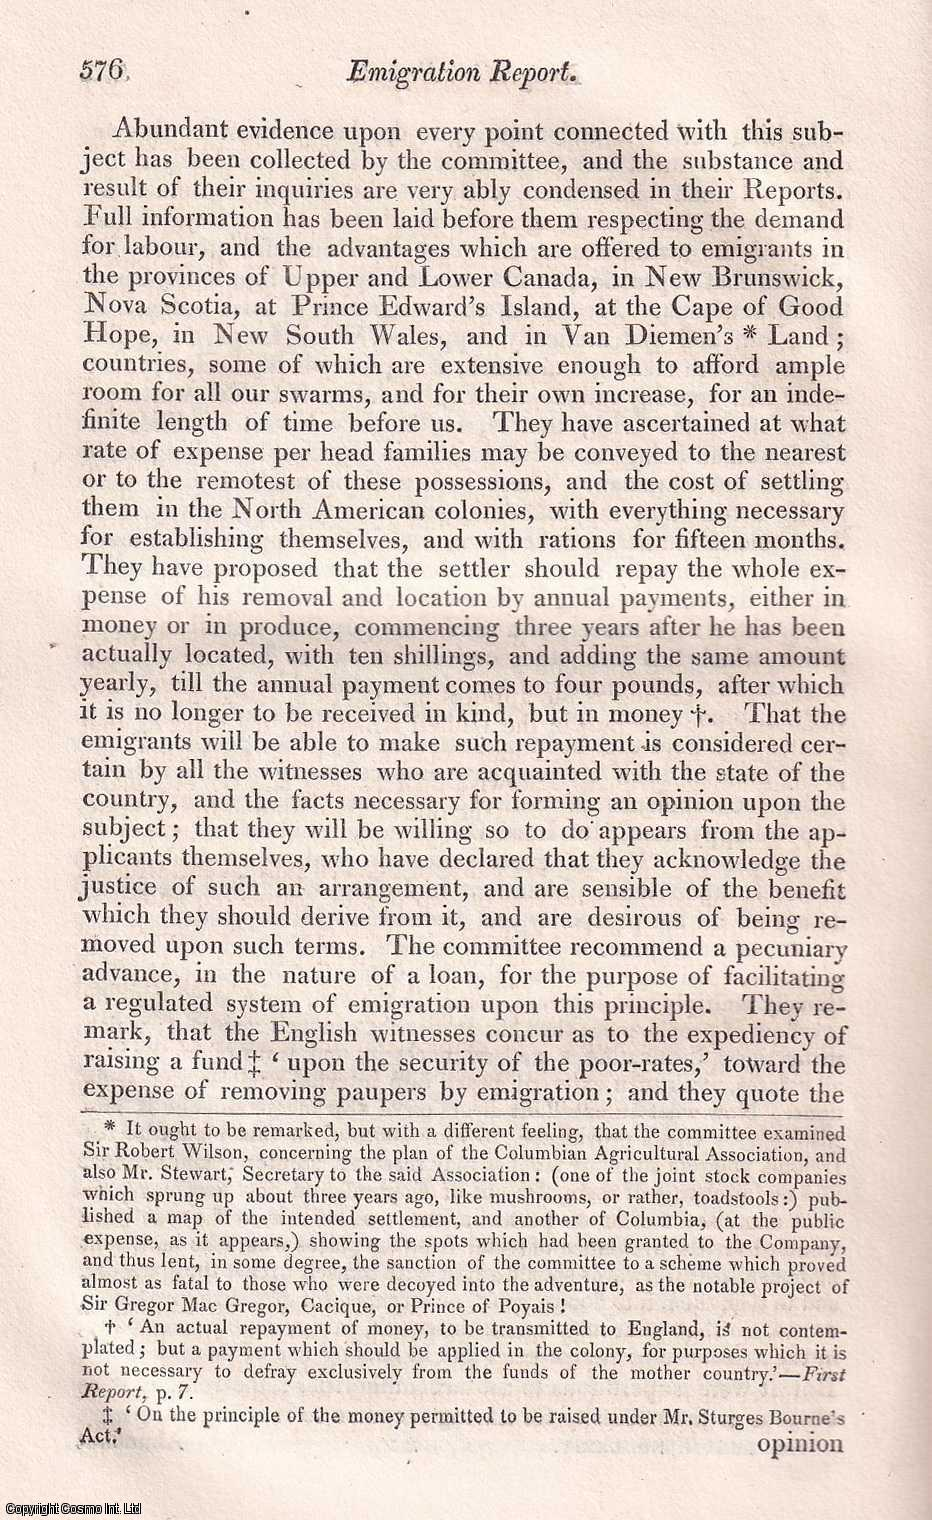 SOUTHEY, ROBERT. - Emigration Report ; the Select Committee's conclusions on United Kingdom emigration. A rare original article from the Quarterly Review, 1828.